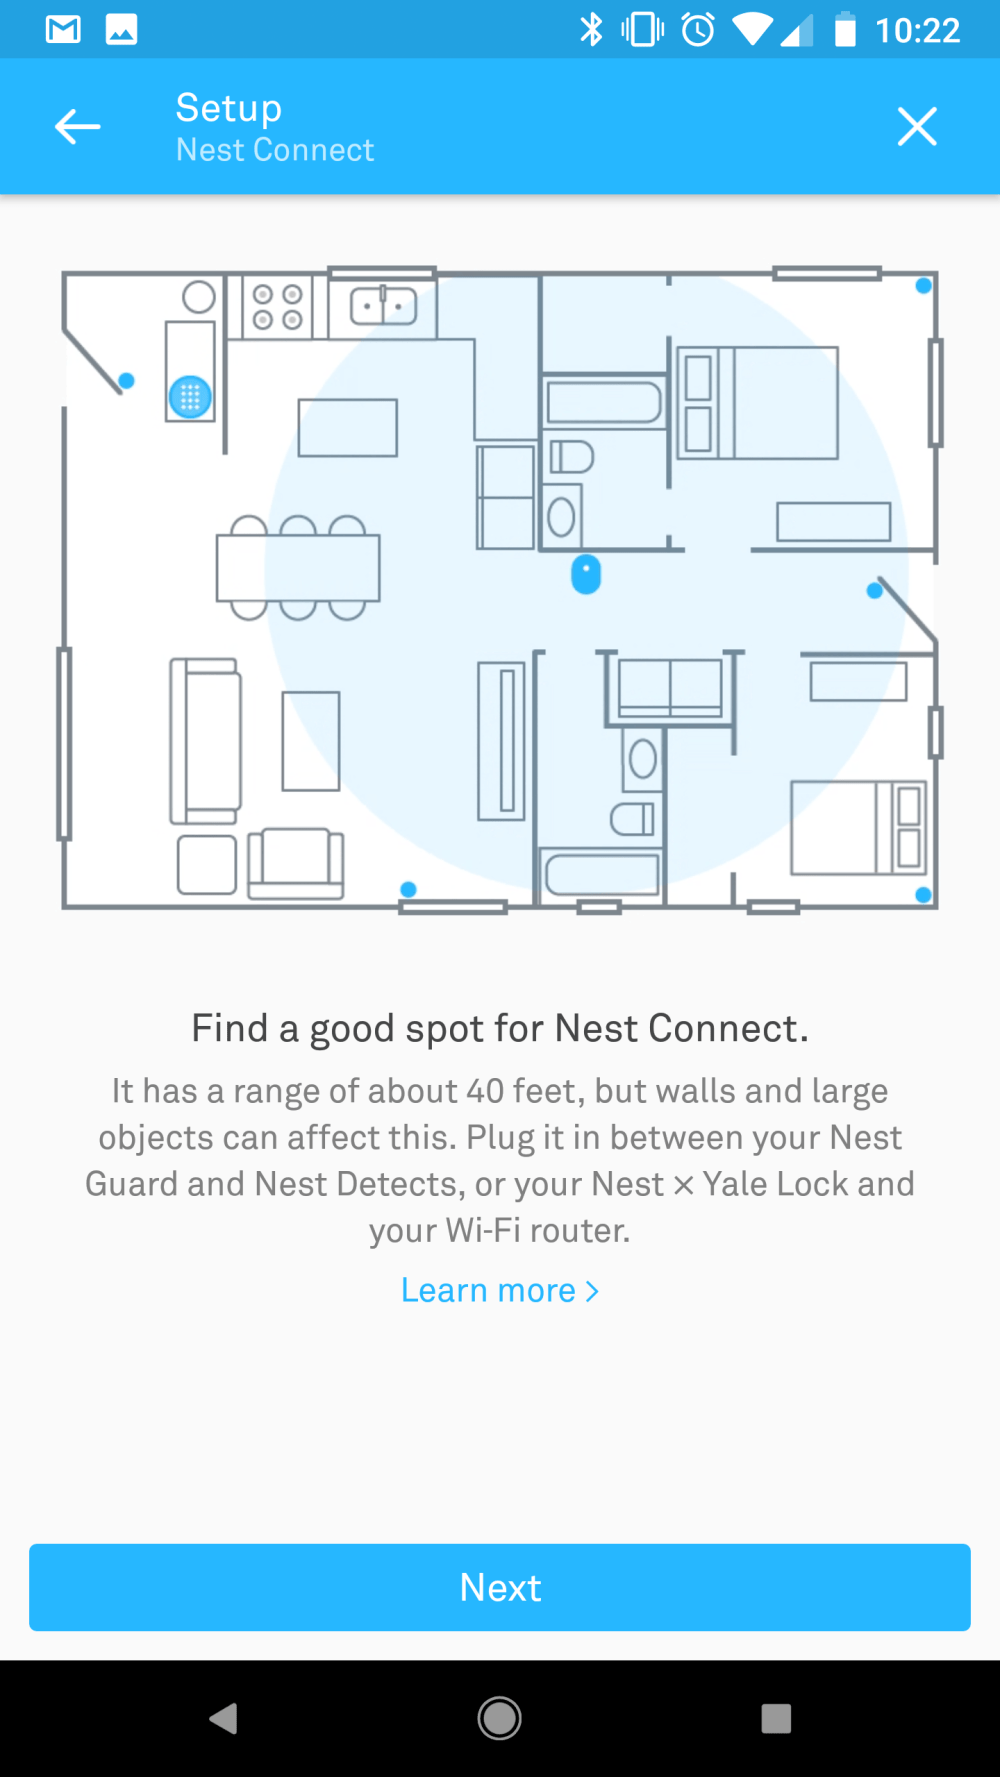 medium resolution of nest x yale lock review screenshot 20180605 102206